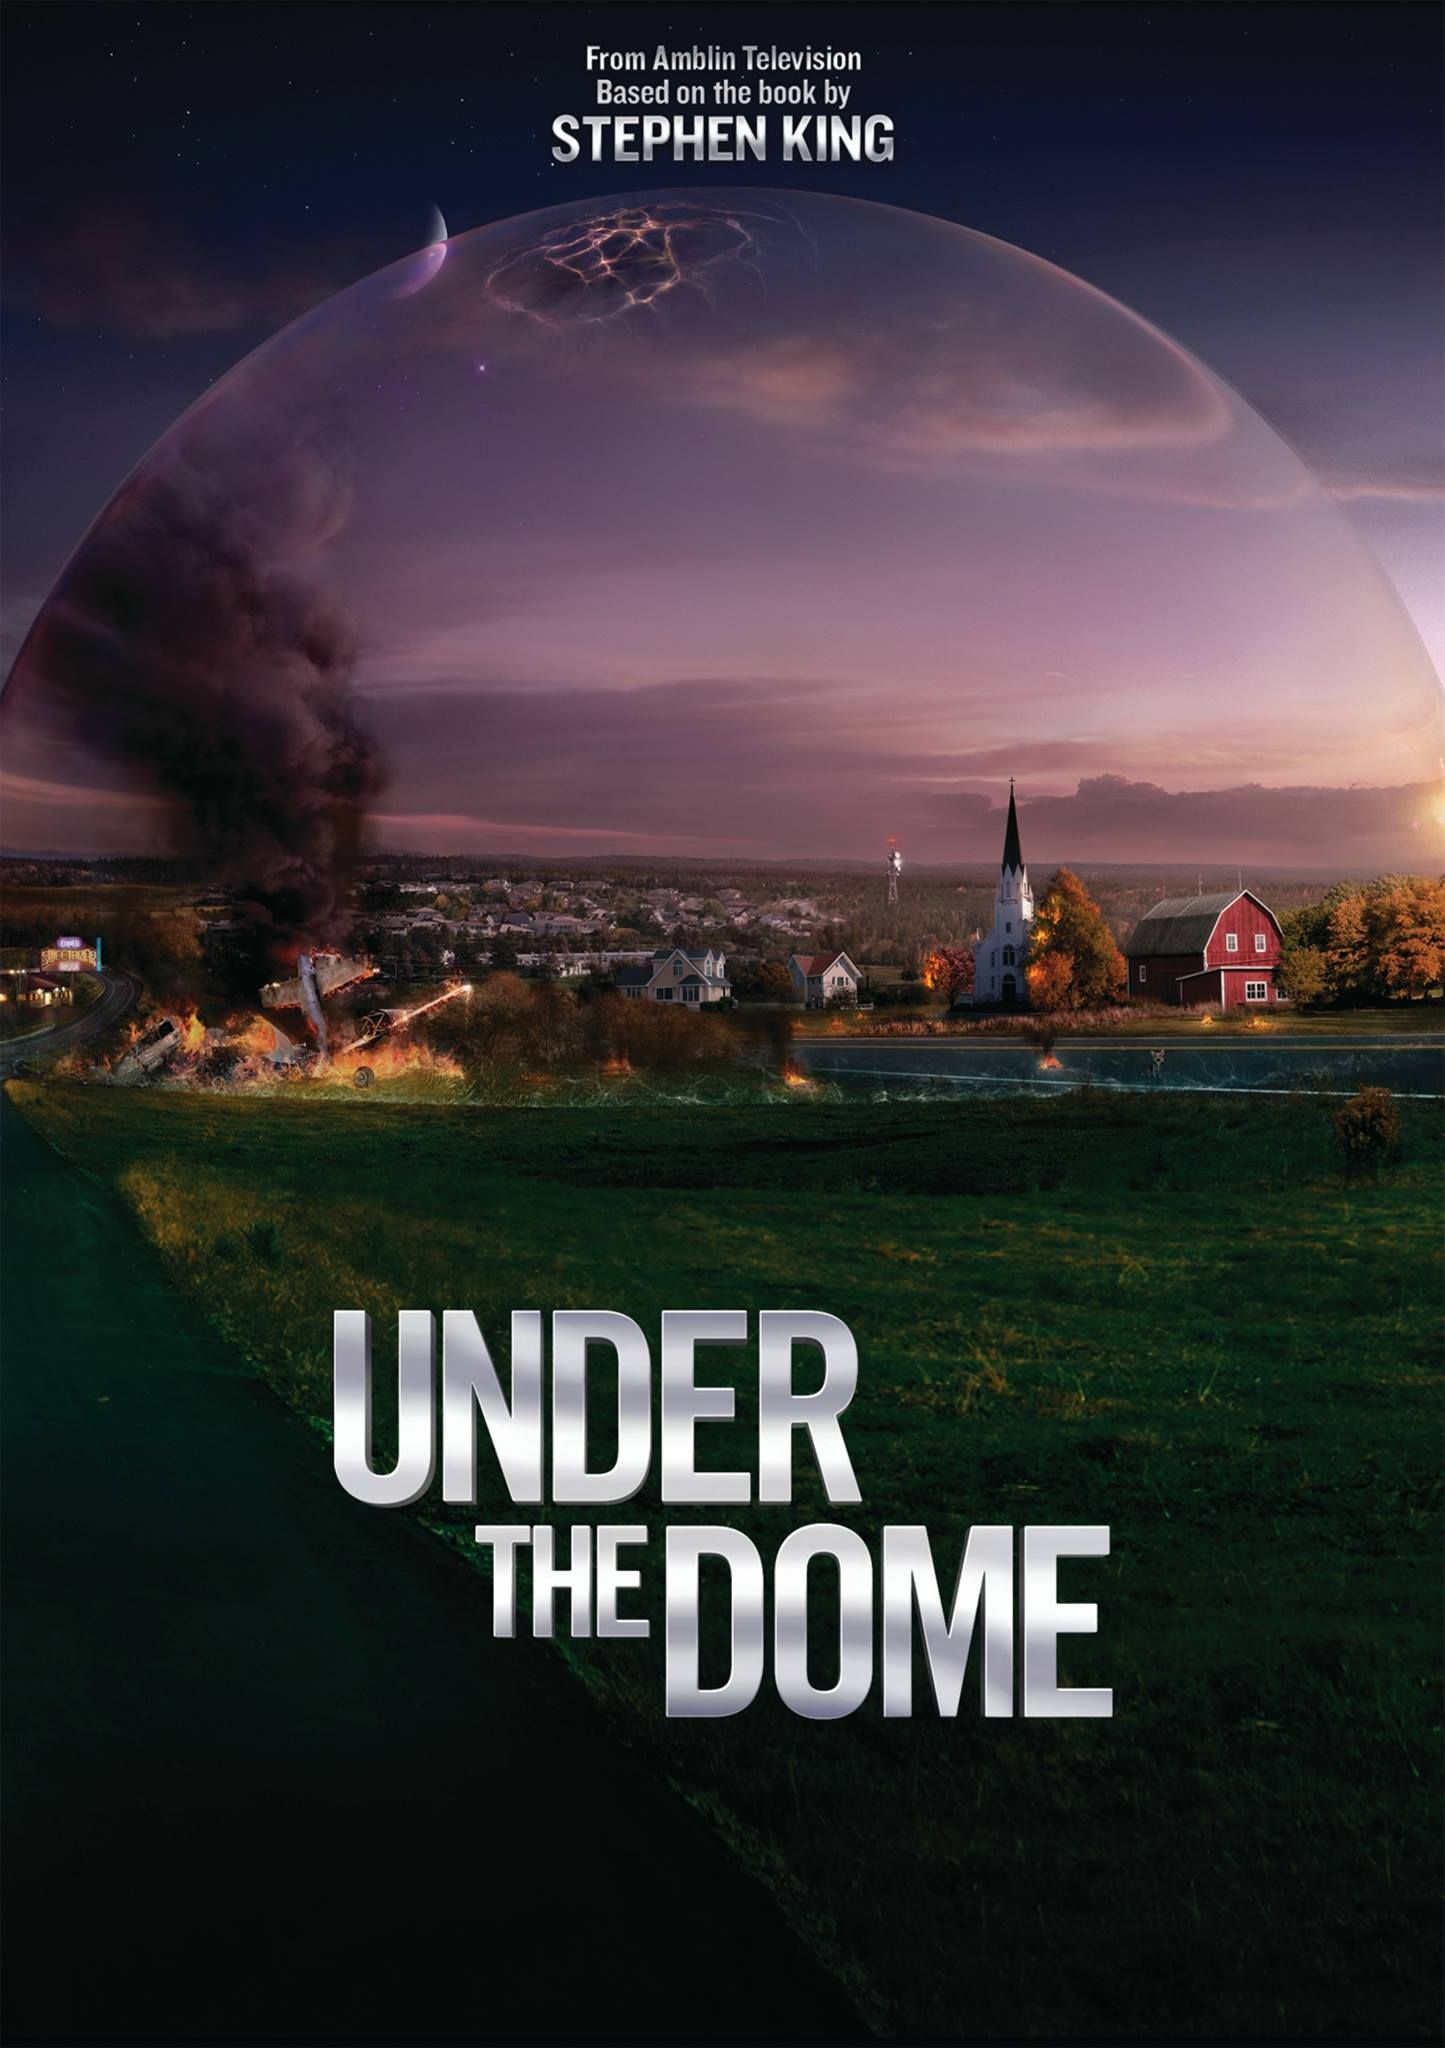 Under The Dome Photo Under The Dome Dvd Cover Under The Dome Tv Series 2013 Great Tv Shows